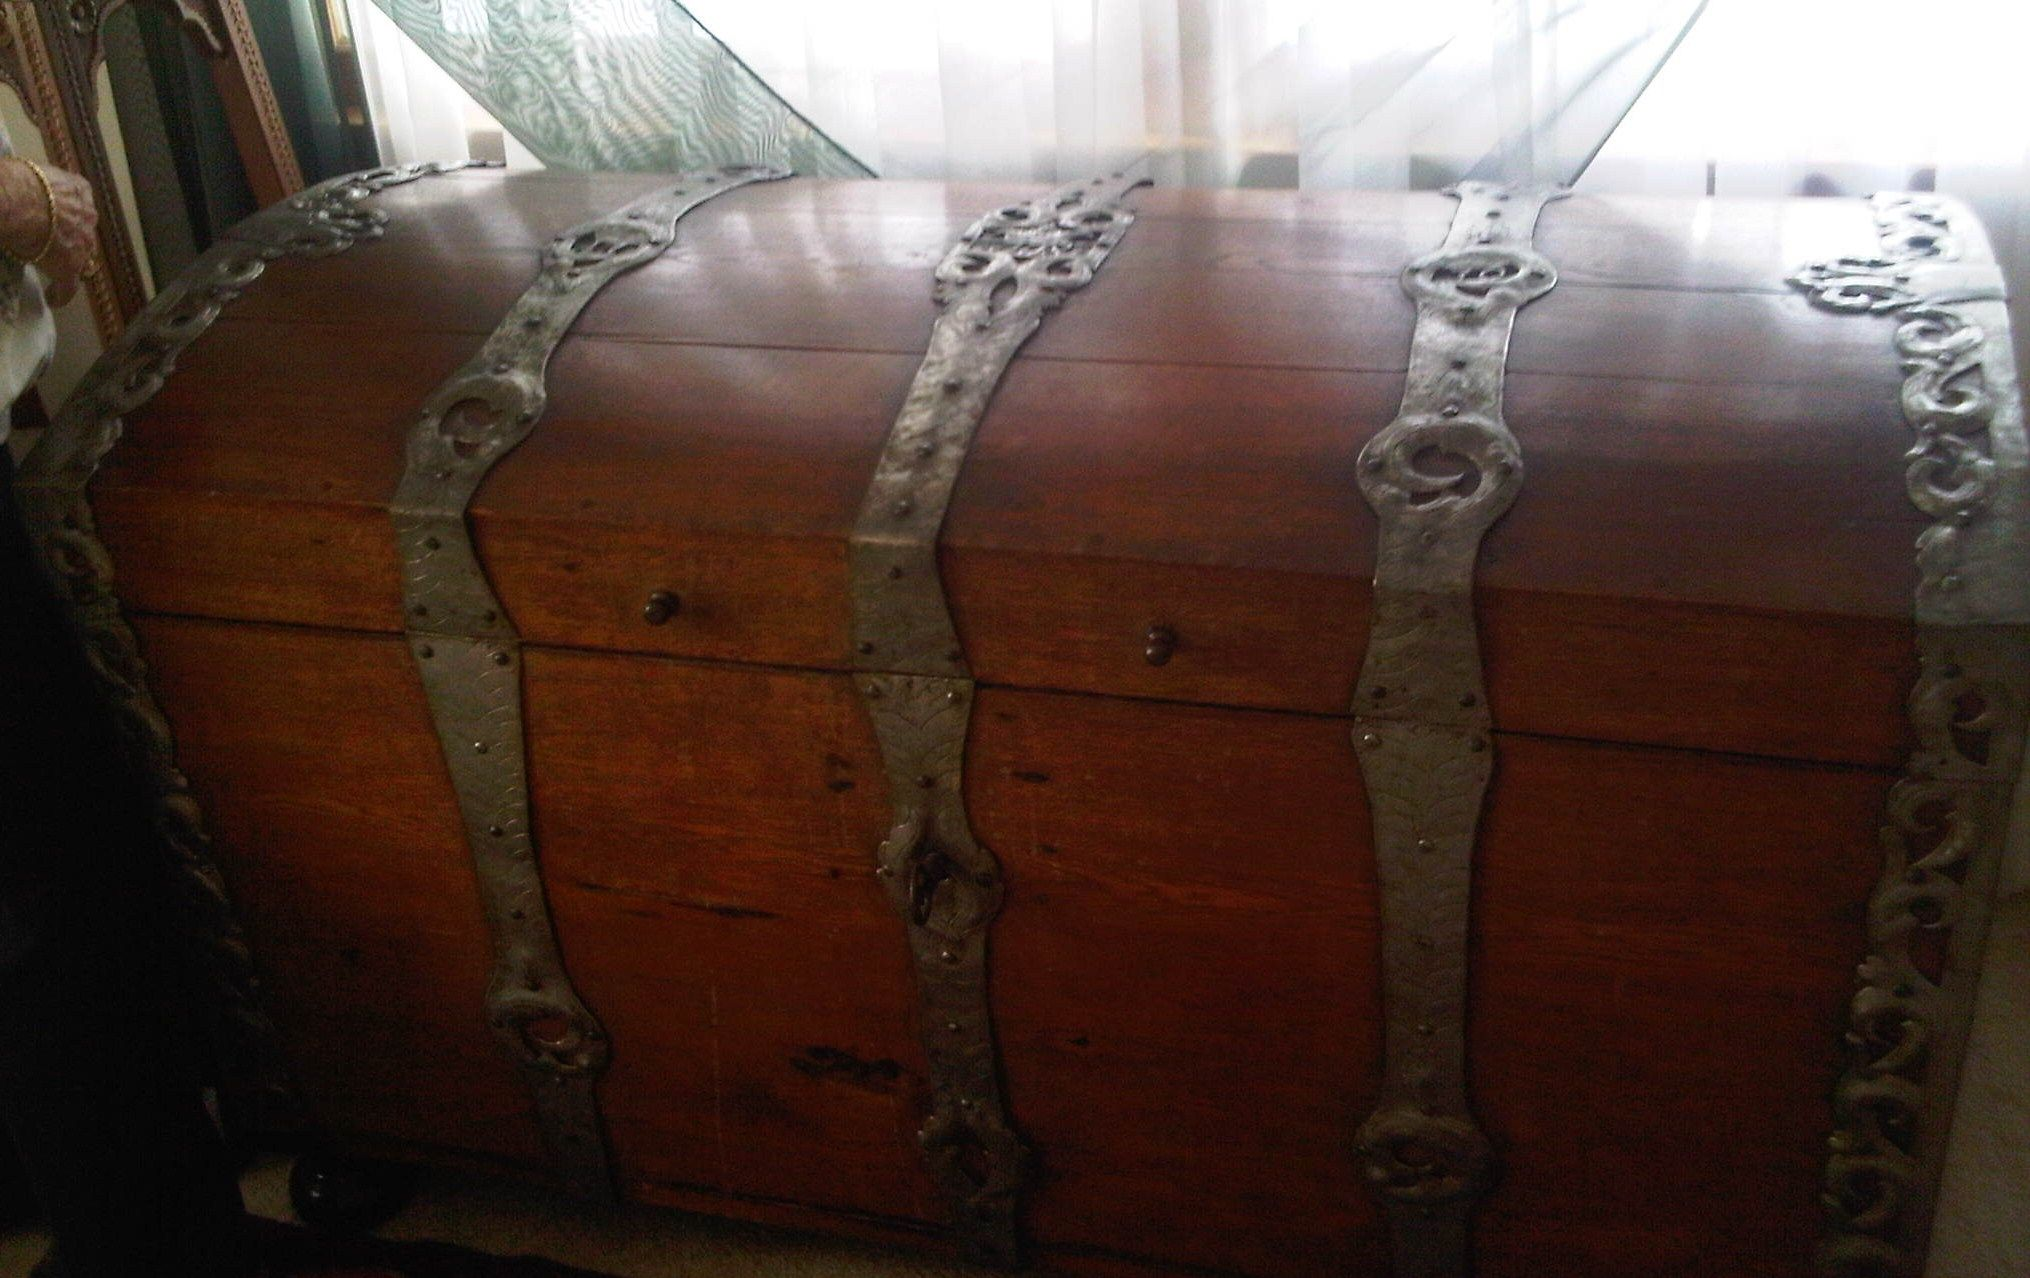 Artmetal Ideas Www Aias Se Domed Wood Chest Or Trunk W Metal Straps ин Auction In Sweden